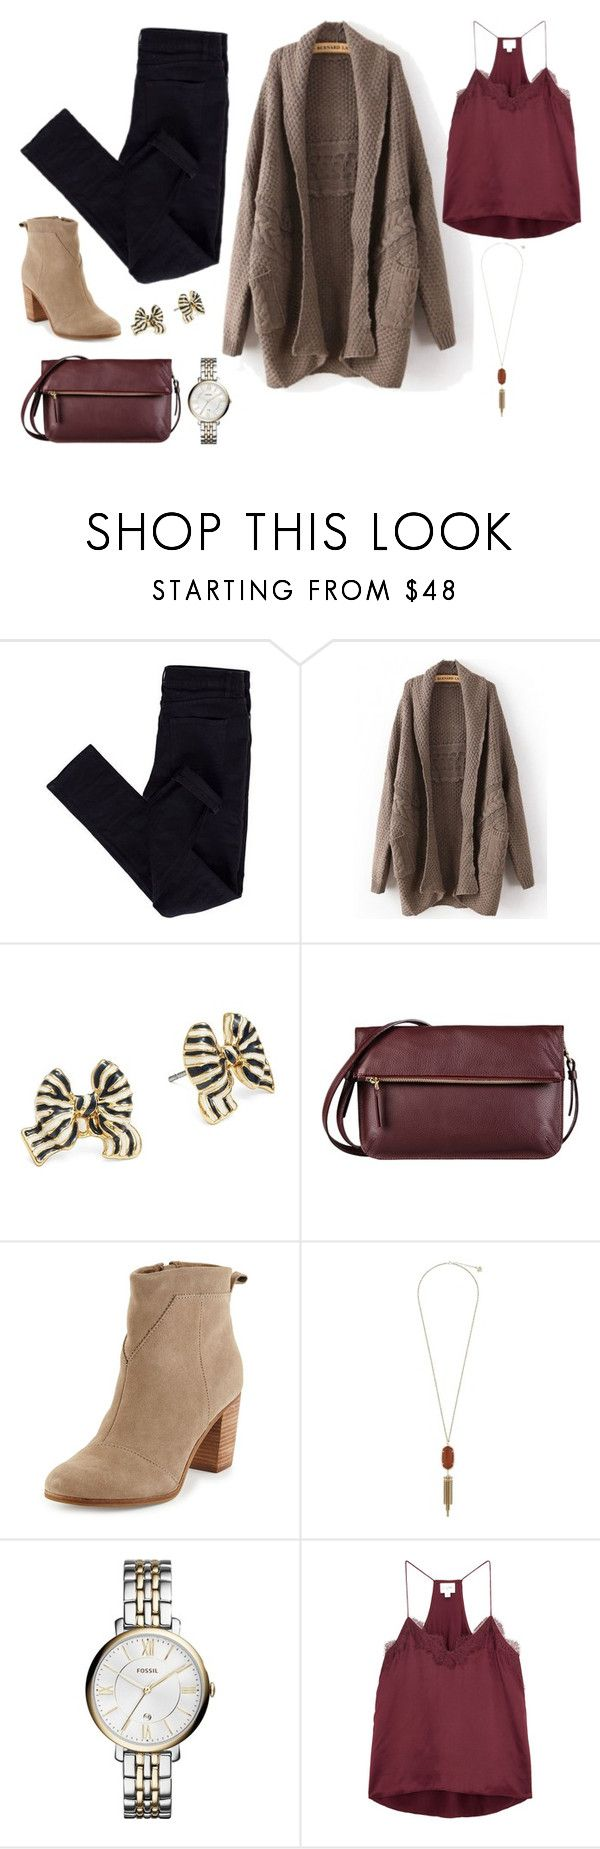 """Untitled #14048"" by beatrizibelo ❤ liked on Polyvore featuring Kate Spade, 8, TOMS, Kendra Scott, FOSSIL and Cami NYC"